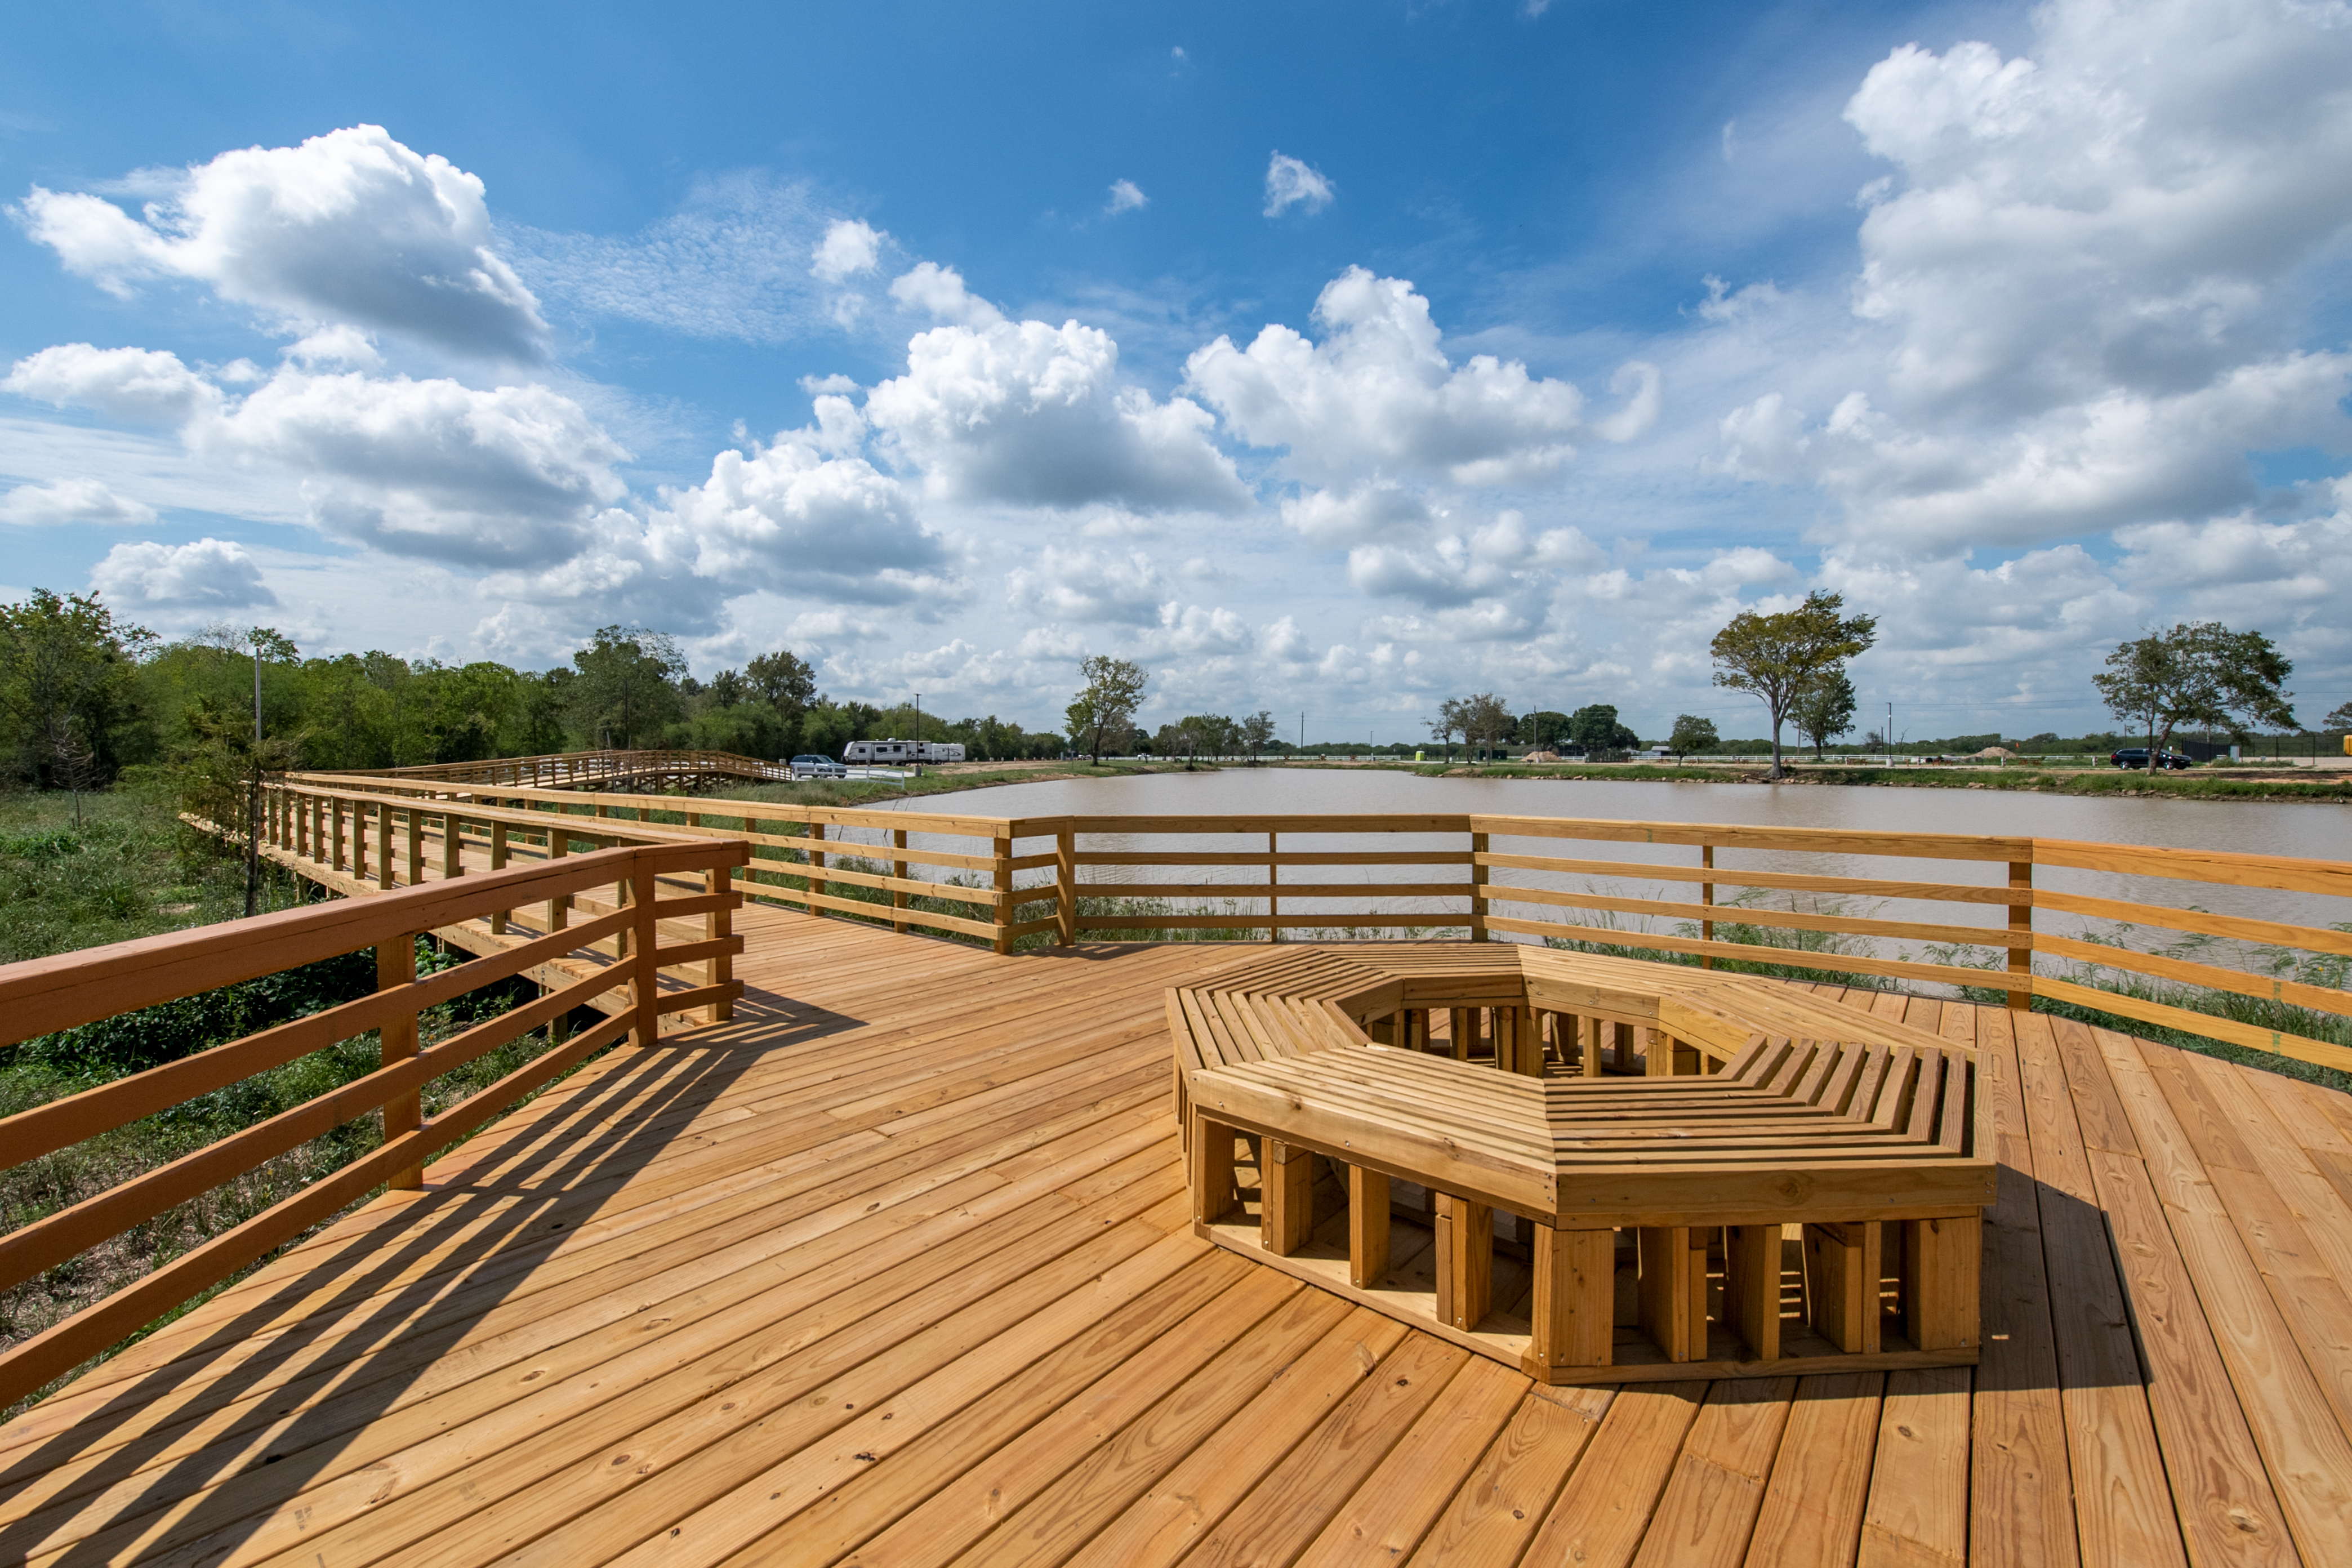 Pleasant Boardwalk with a fountain view